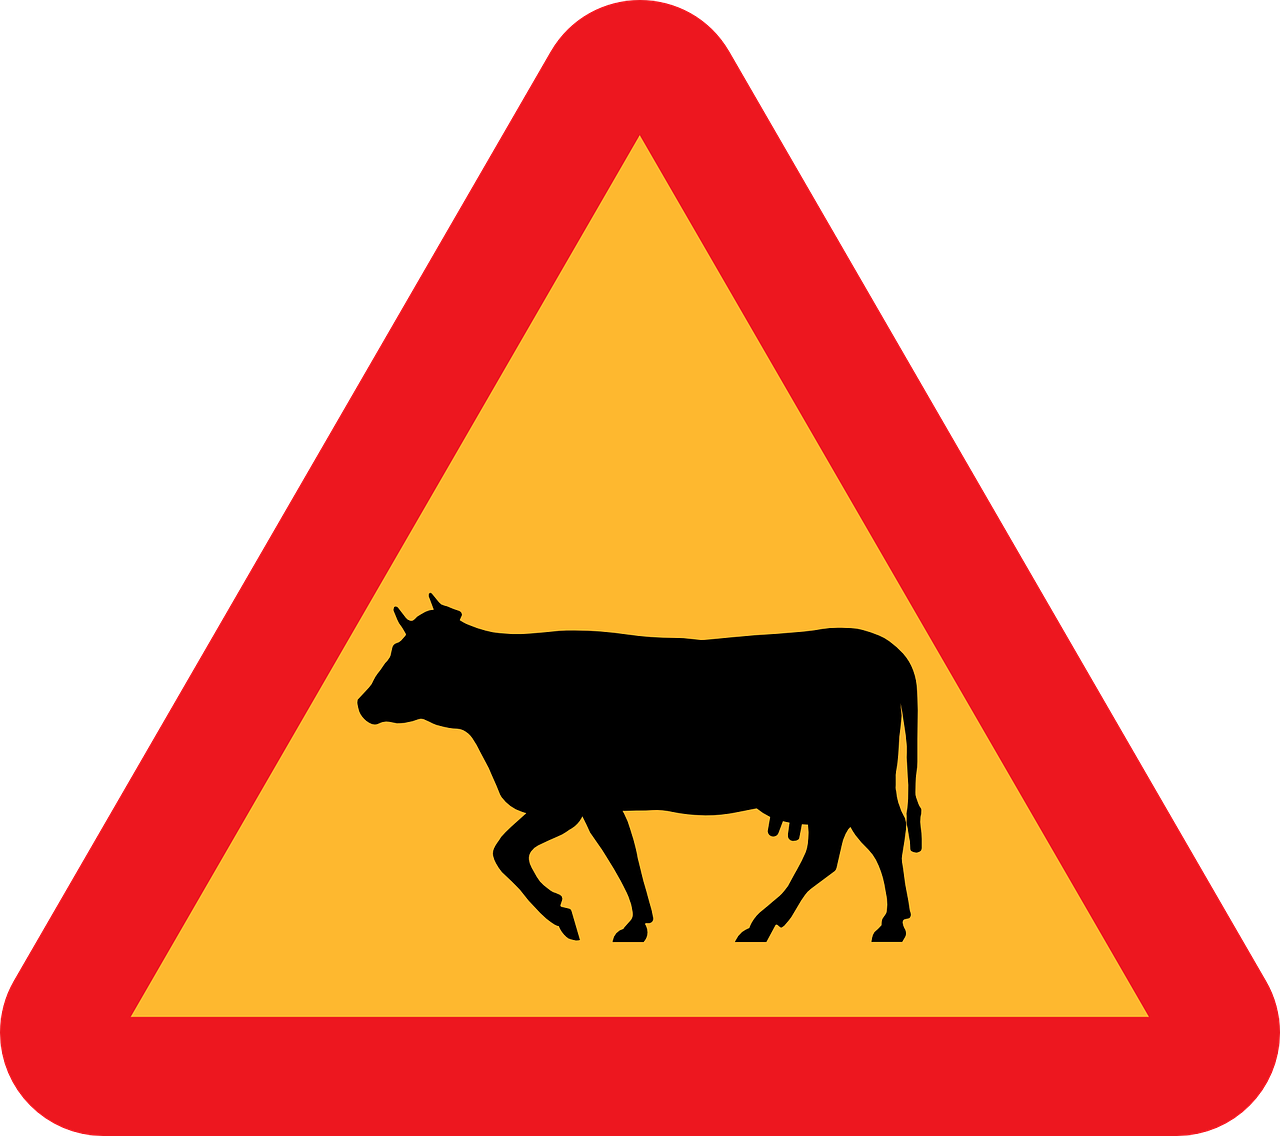 Cattle Crossing Roadsign Road Sign Free Vector Graphic On Pixabay